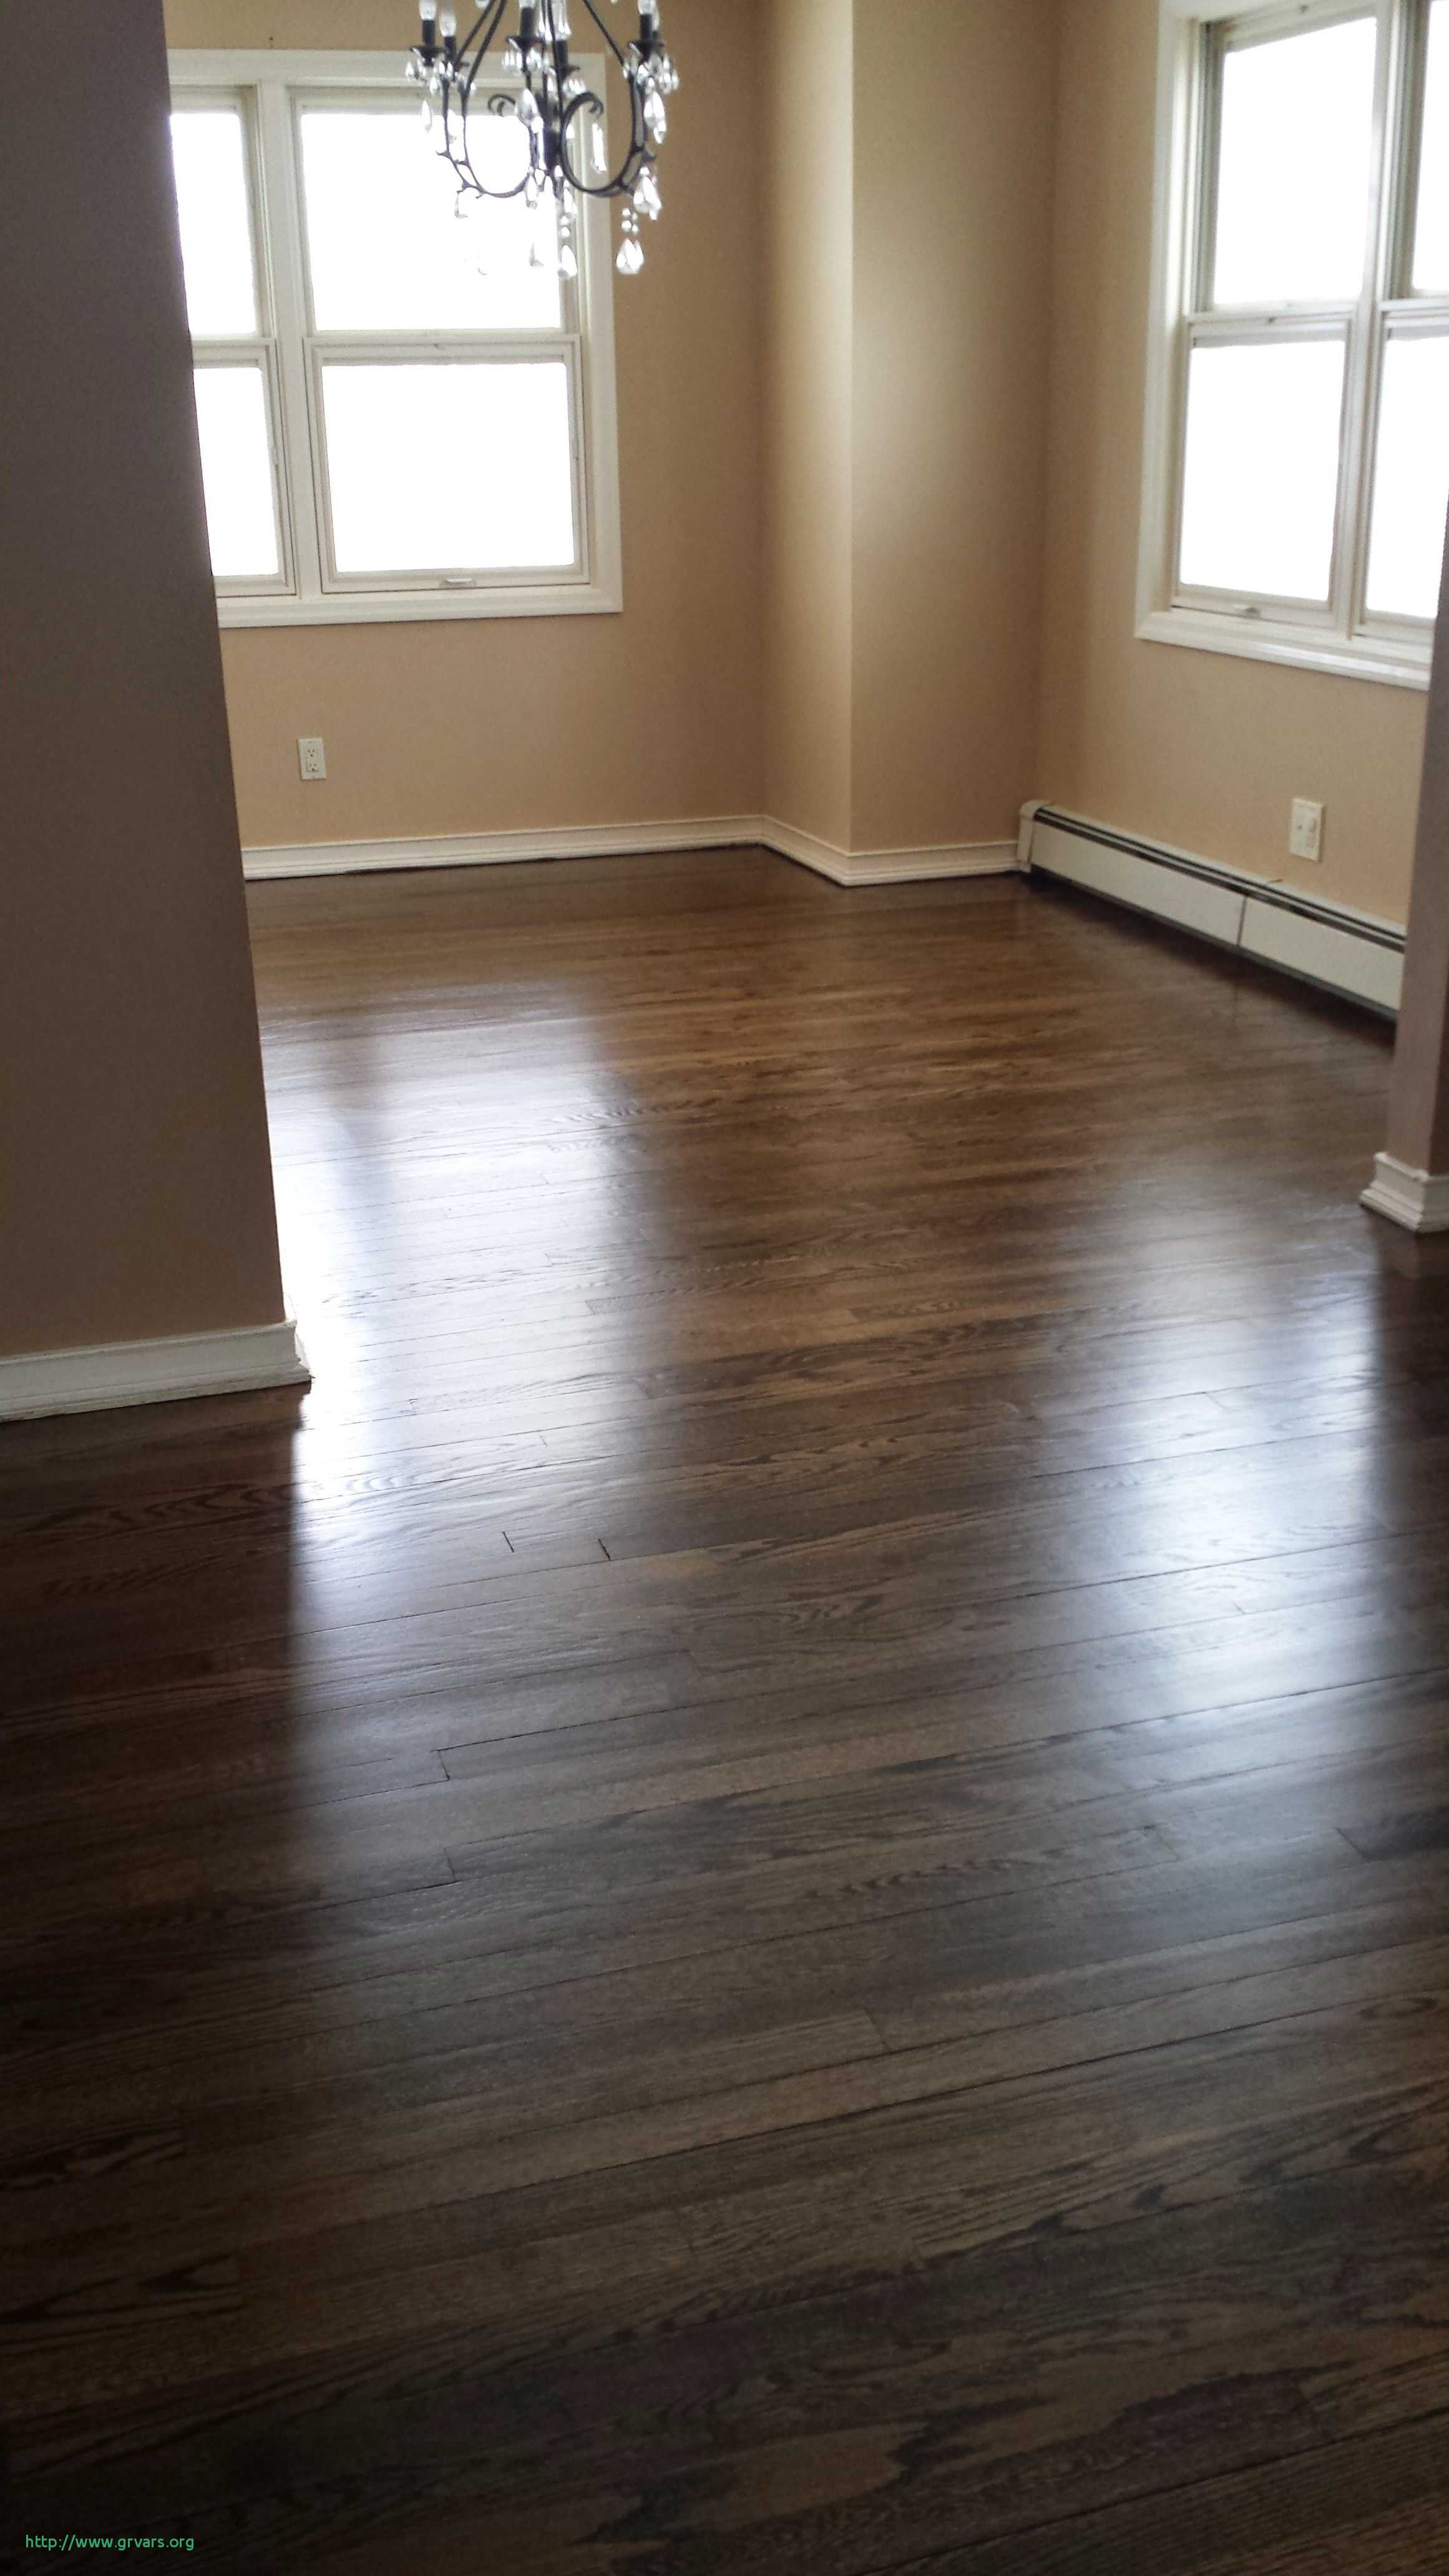 average cost to restain hardwood floors of 25 meilleur de cost to restain hardwood floors ideas blog with regard to interior amusing refinishingod floors diy network refinish parquet without sanding buffing with pet stains refinishing hardwood